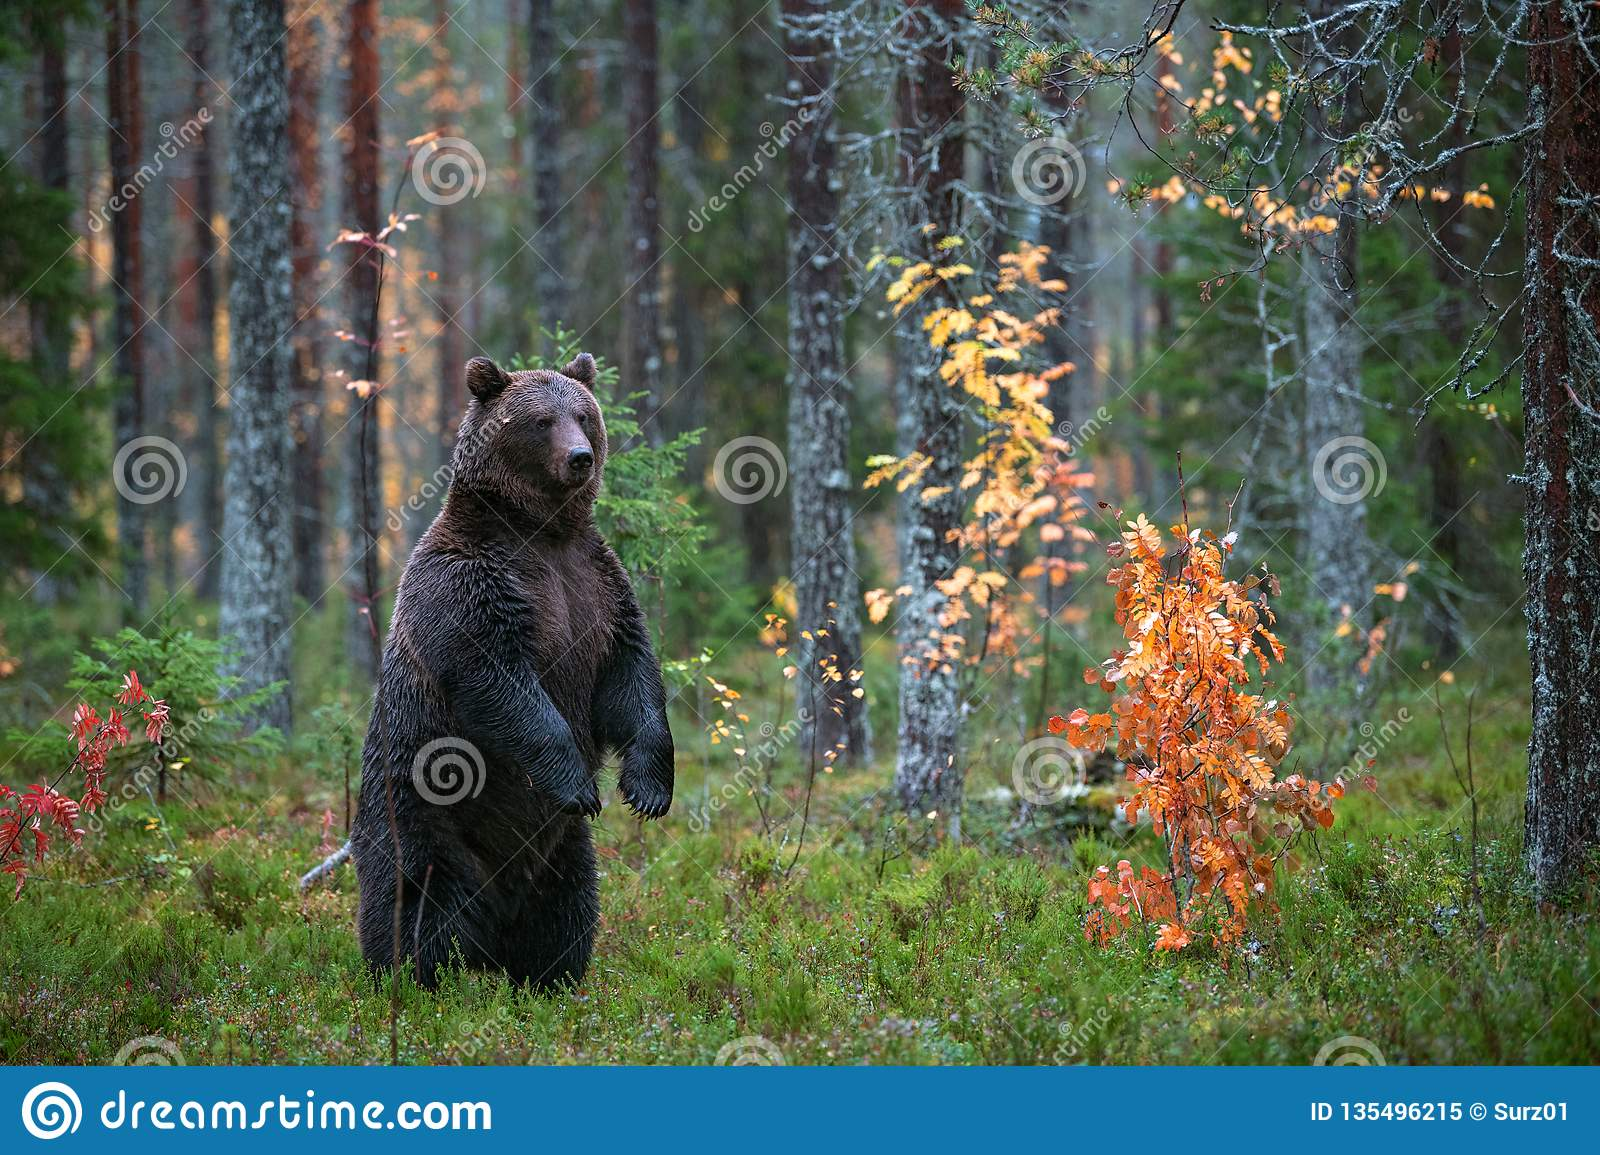 Brown bear standing on his hind legs in the autumn forest.